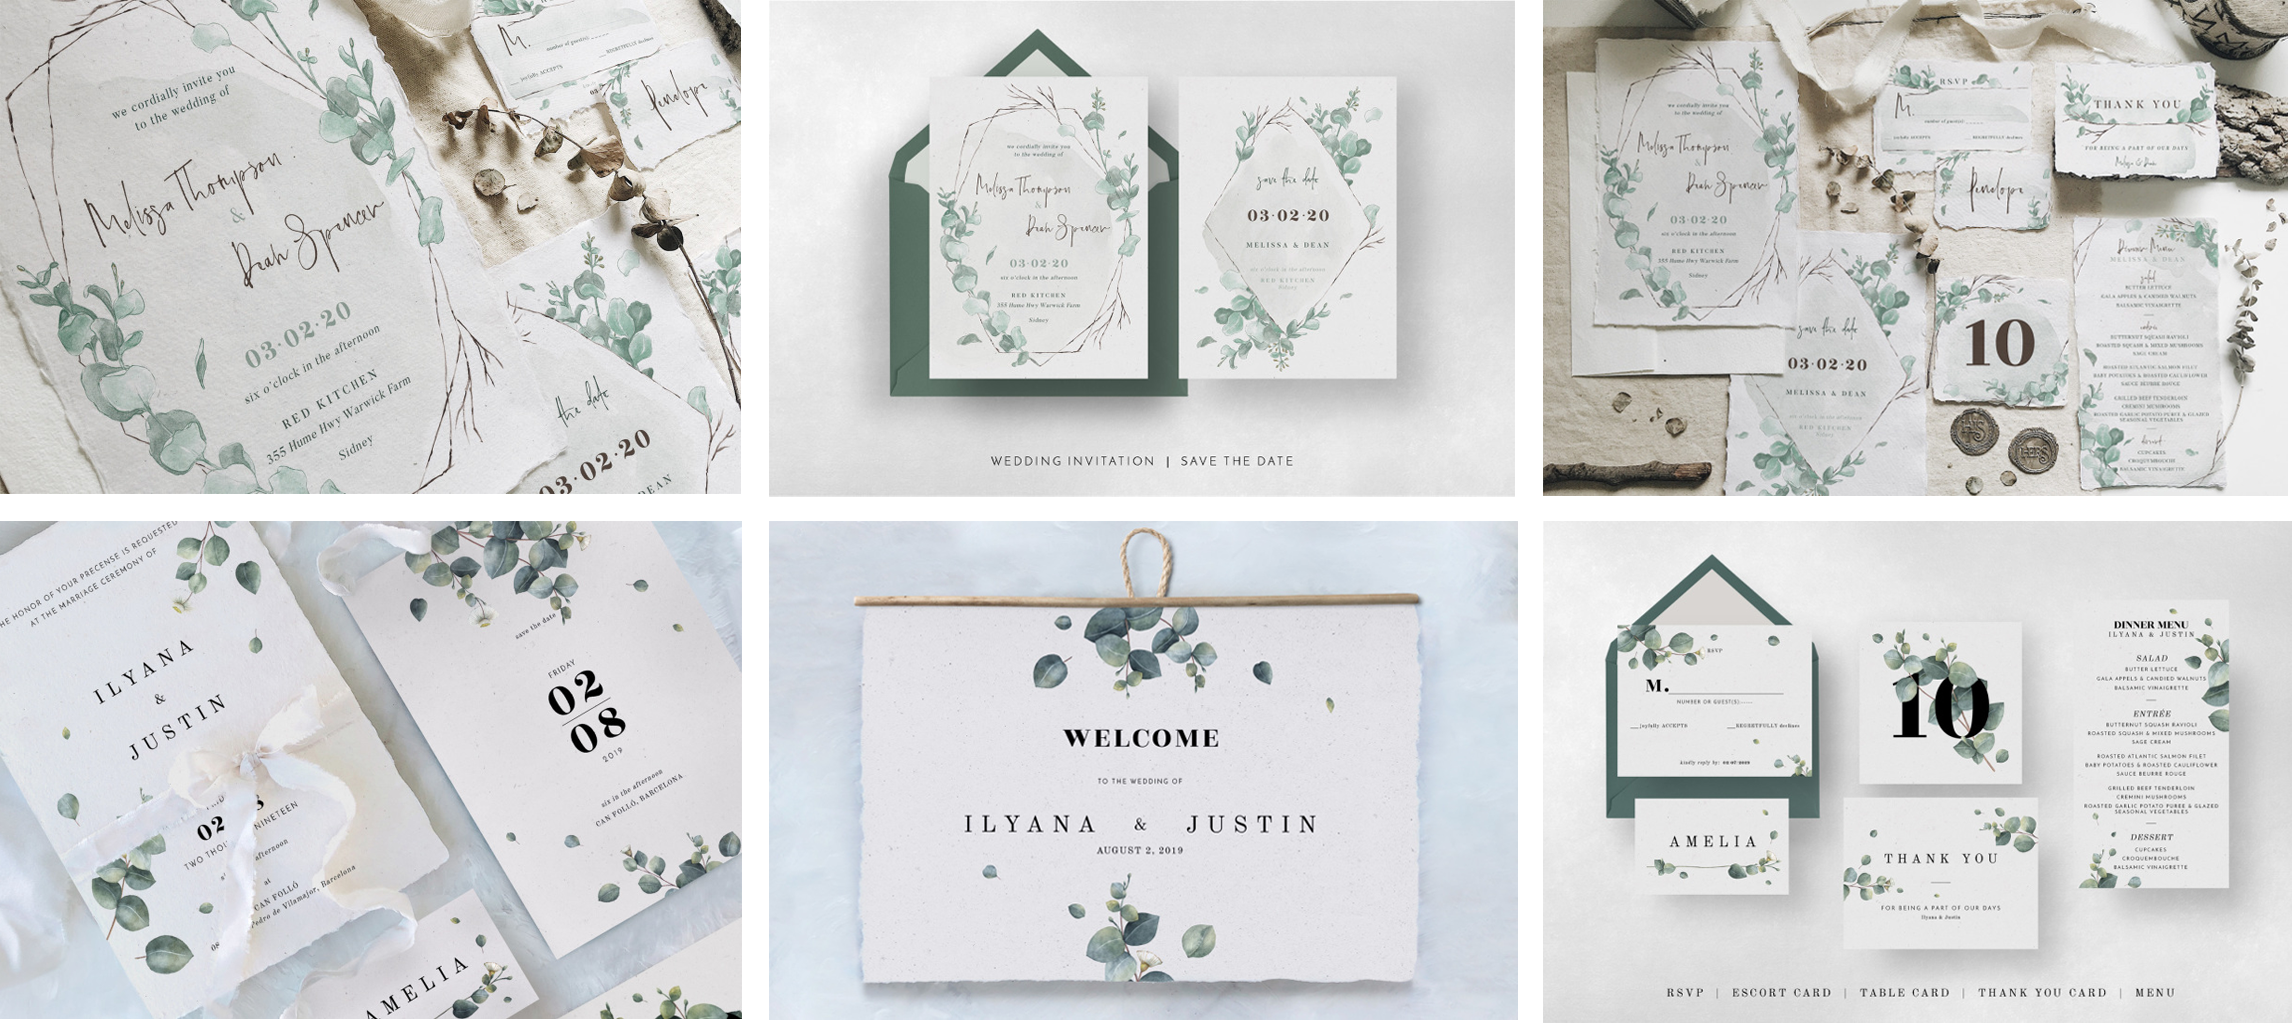 Time To DIY Your Wedding Invitations With These Trends